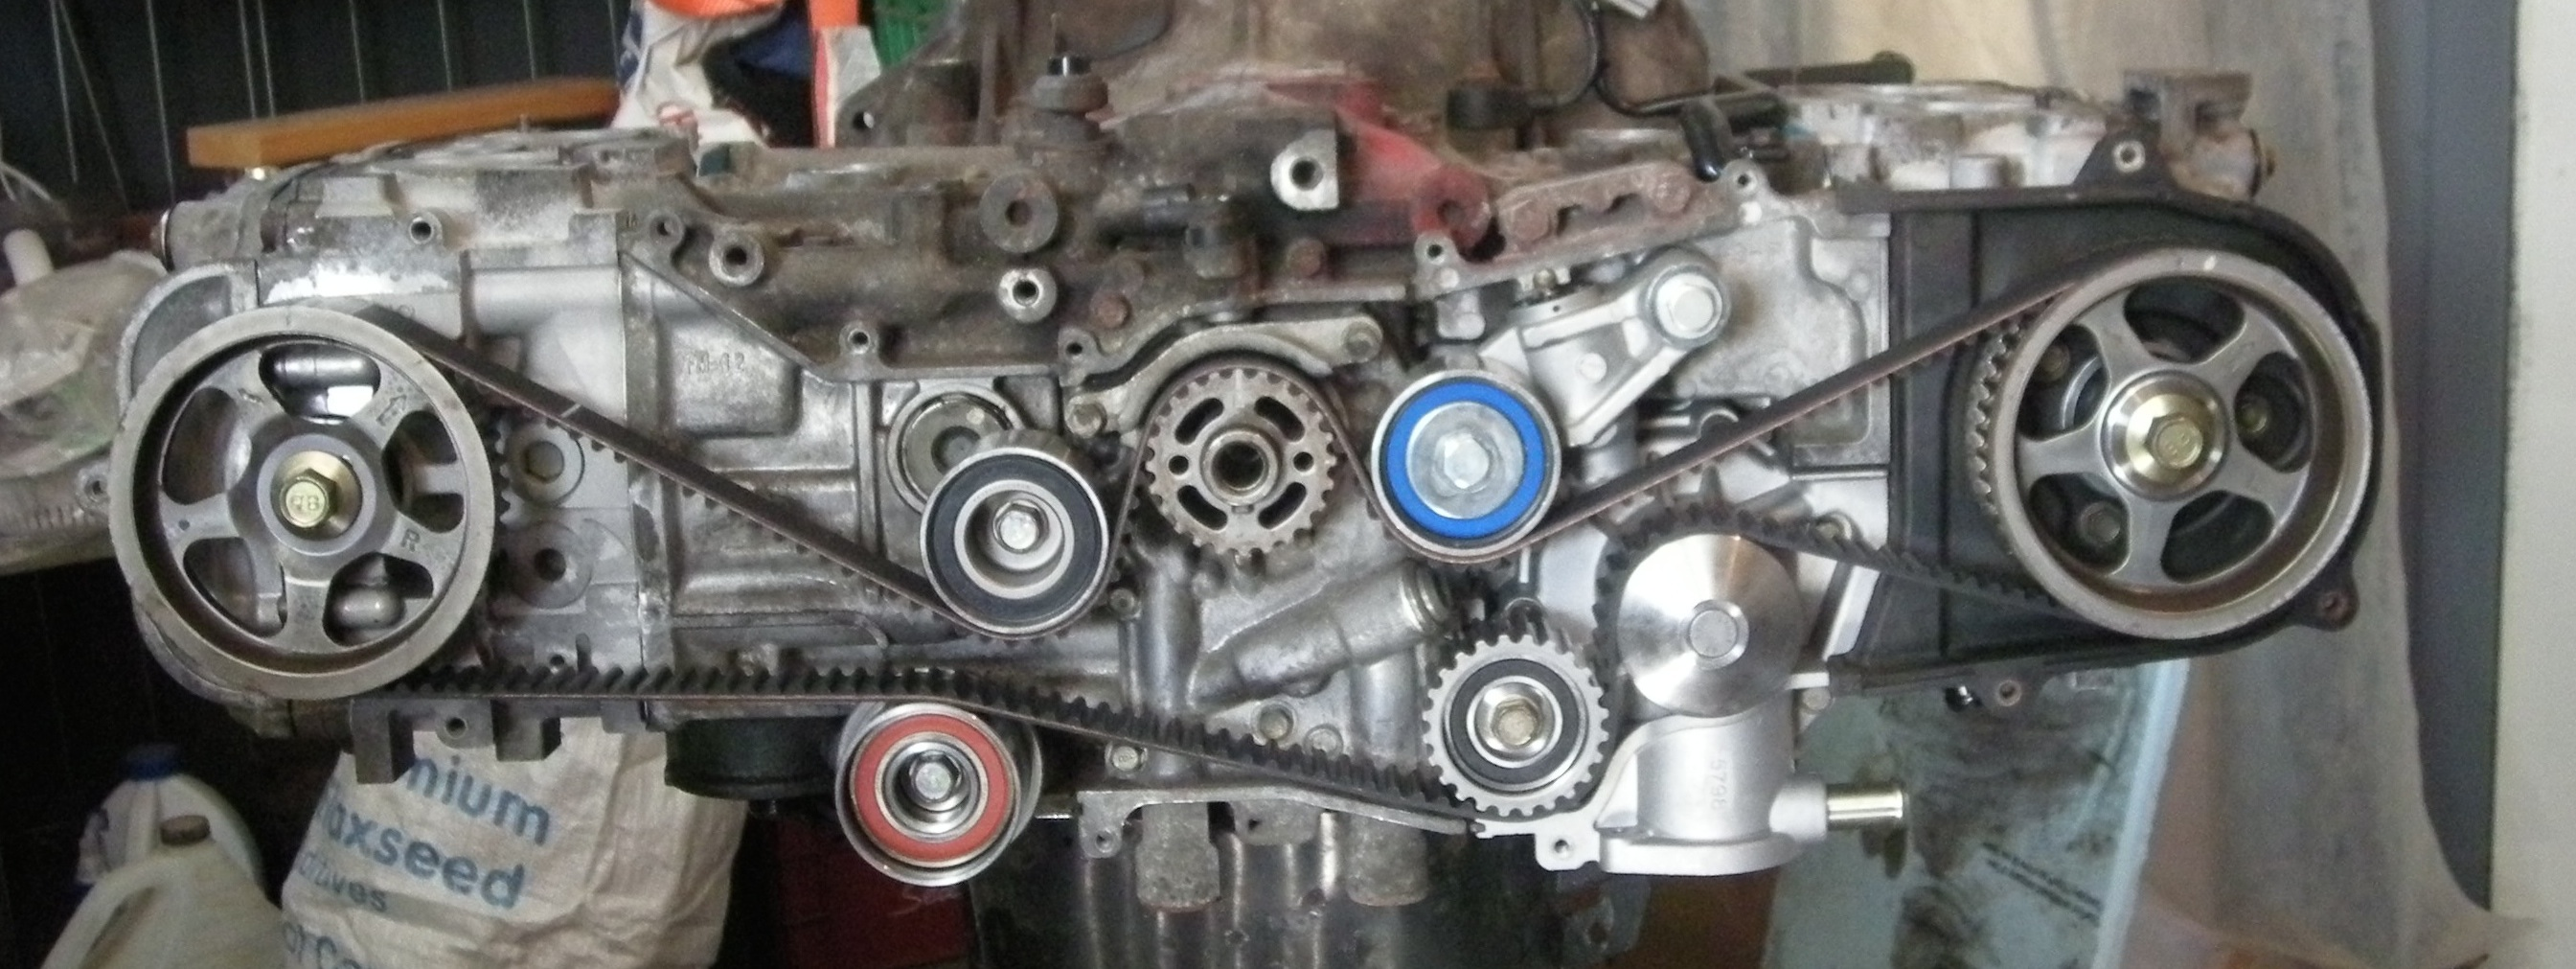 hight resolution of how to set timing timing belt change on a subaru sohc ej25 rh shagbarkblog wordpress com